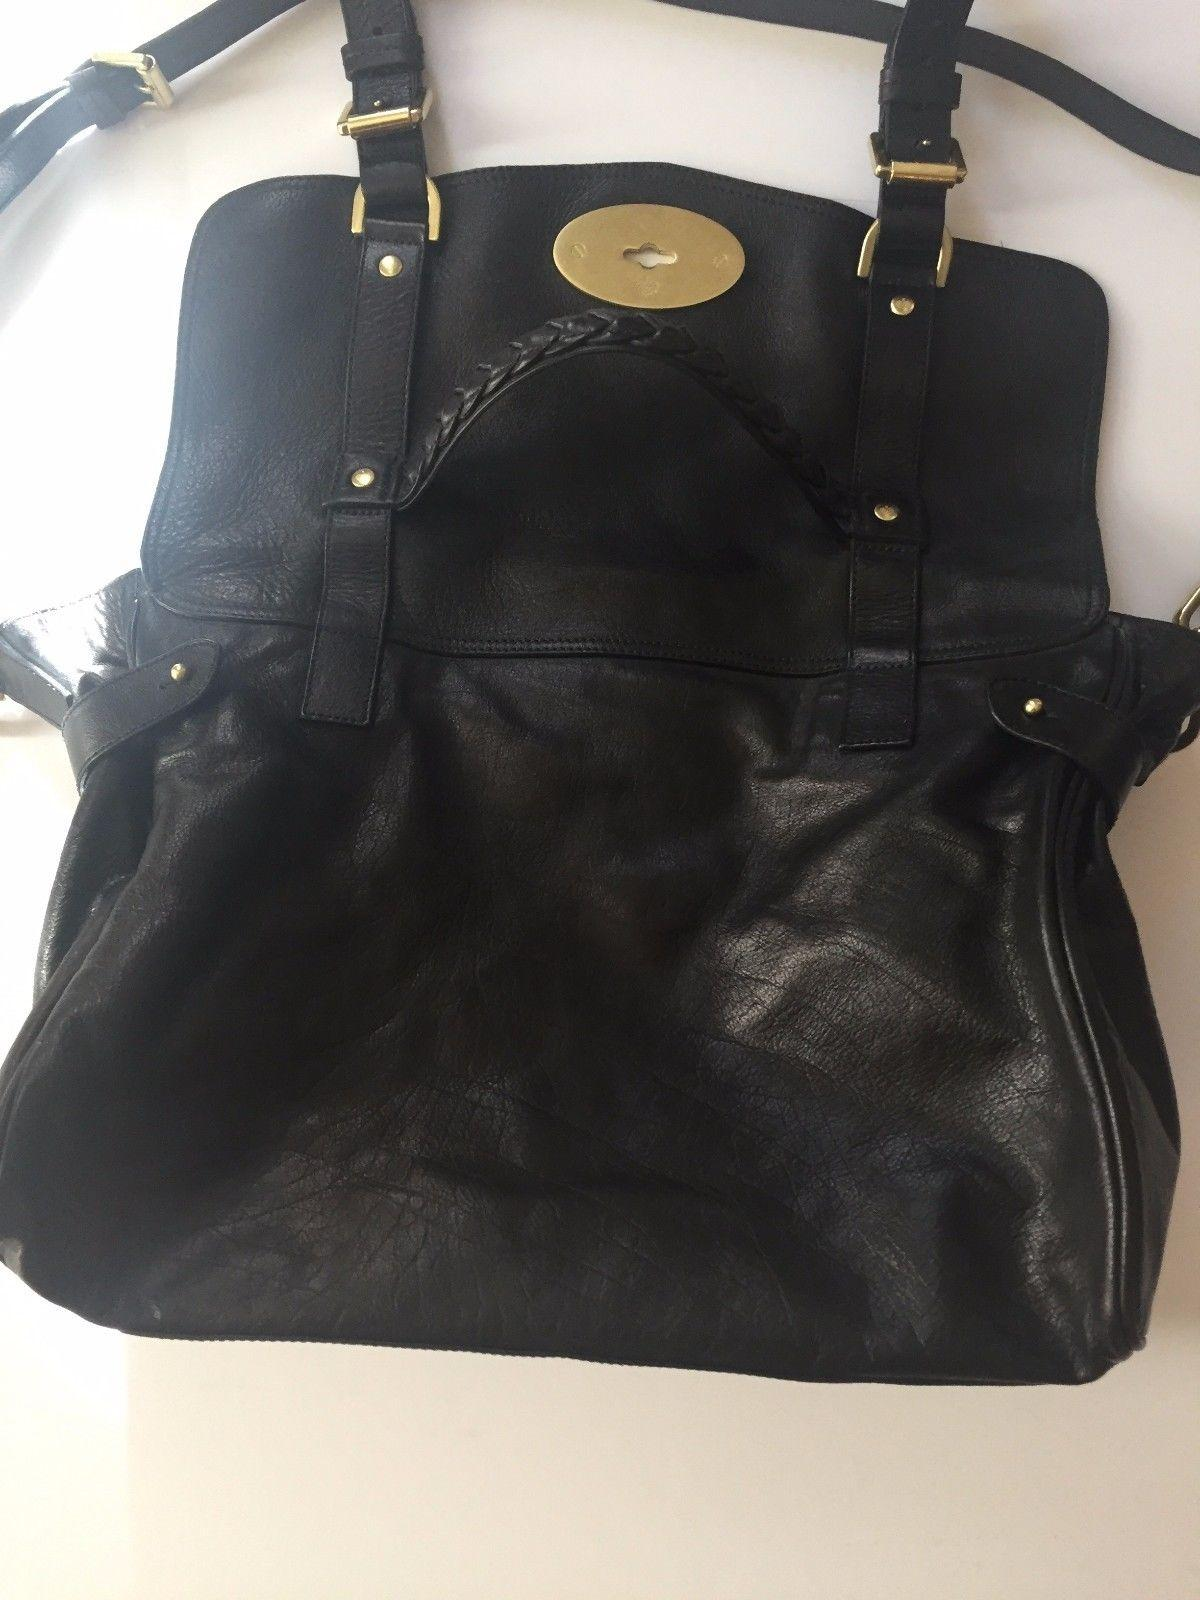 low price mulberry oversized alexa black leather satchel 797fc e8b10 9a5687ed2d095